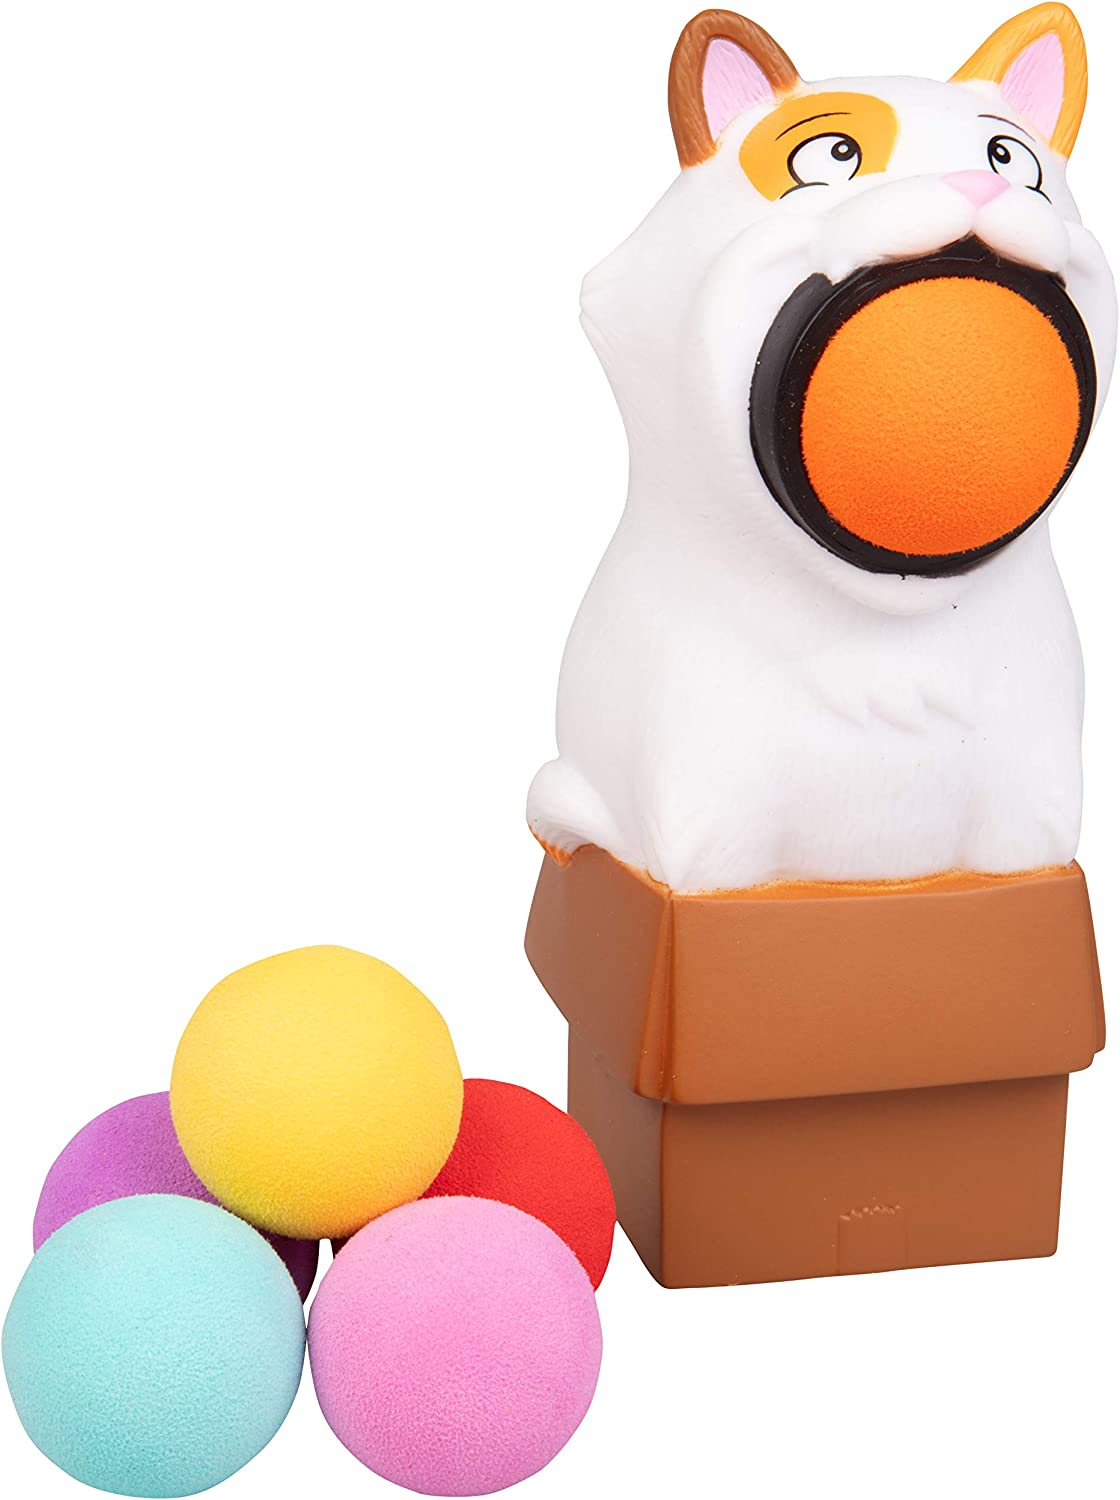 Hog Wild Kitty Cat Popper Toy - Shoot Foam Balls Up to 20 Feet - 6 Balls Included - Age 4+